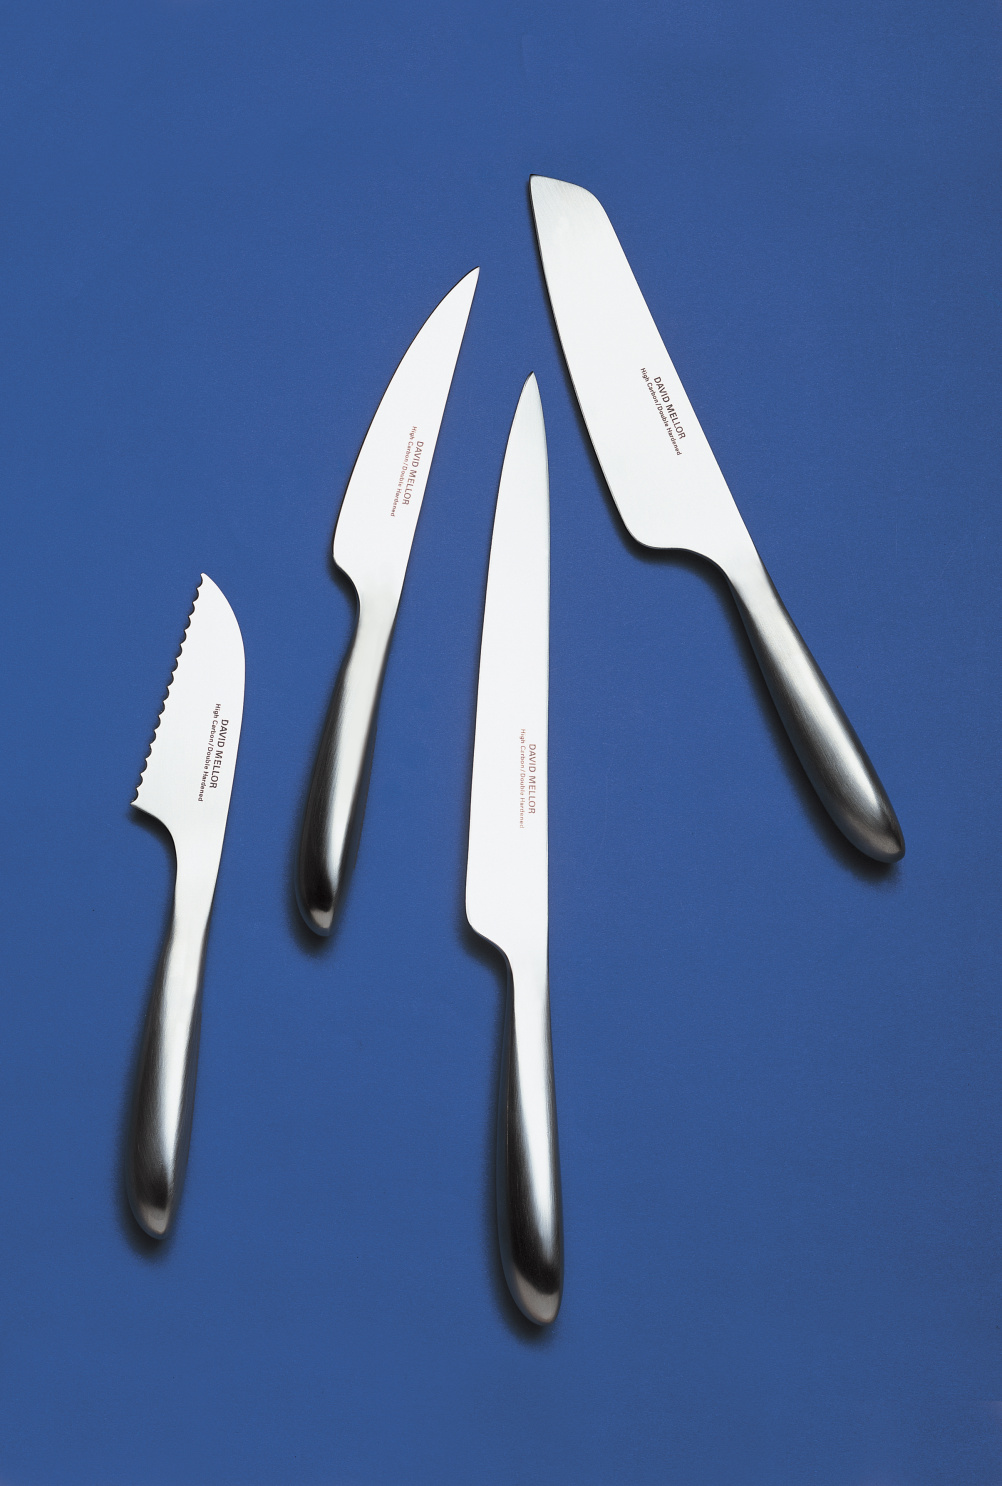 Stainless steel kitchen knives designed by David Mellor in 2002